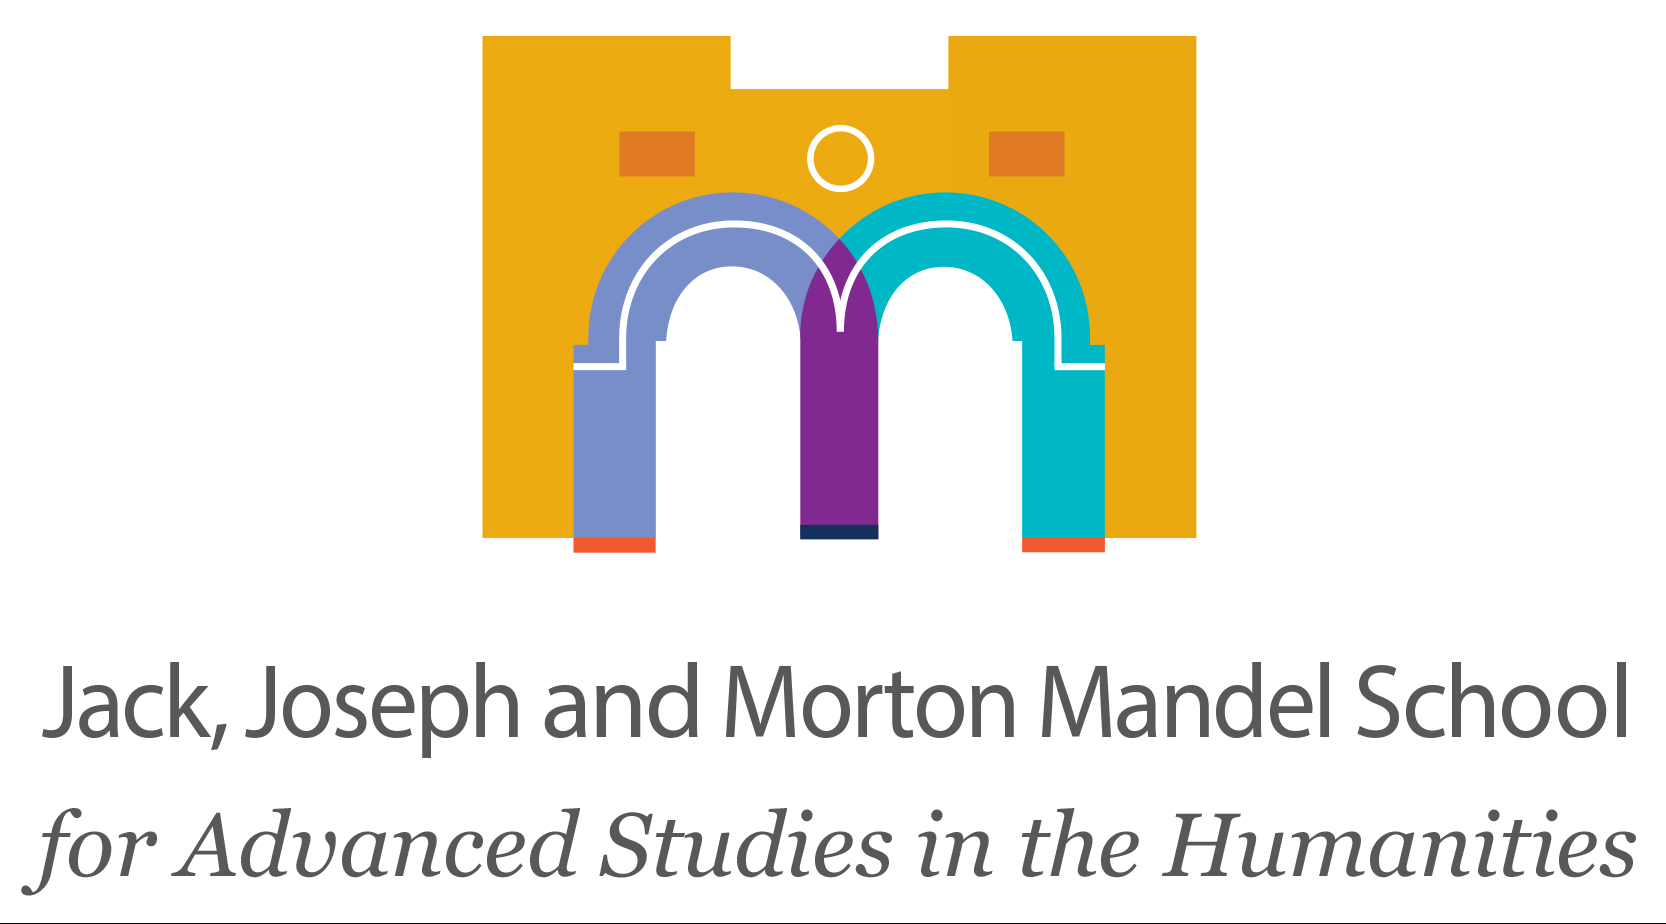 Jack, Joseph & Morton Mandel School for Advanced Studies in the Humanities